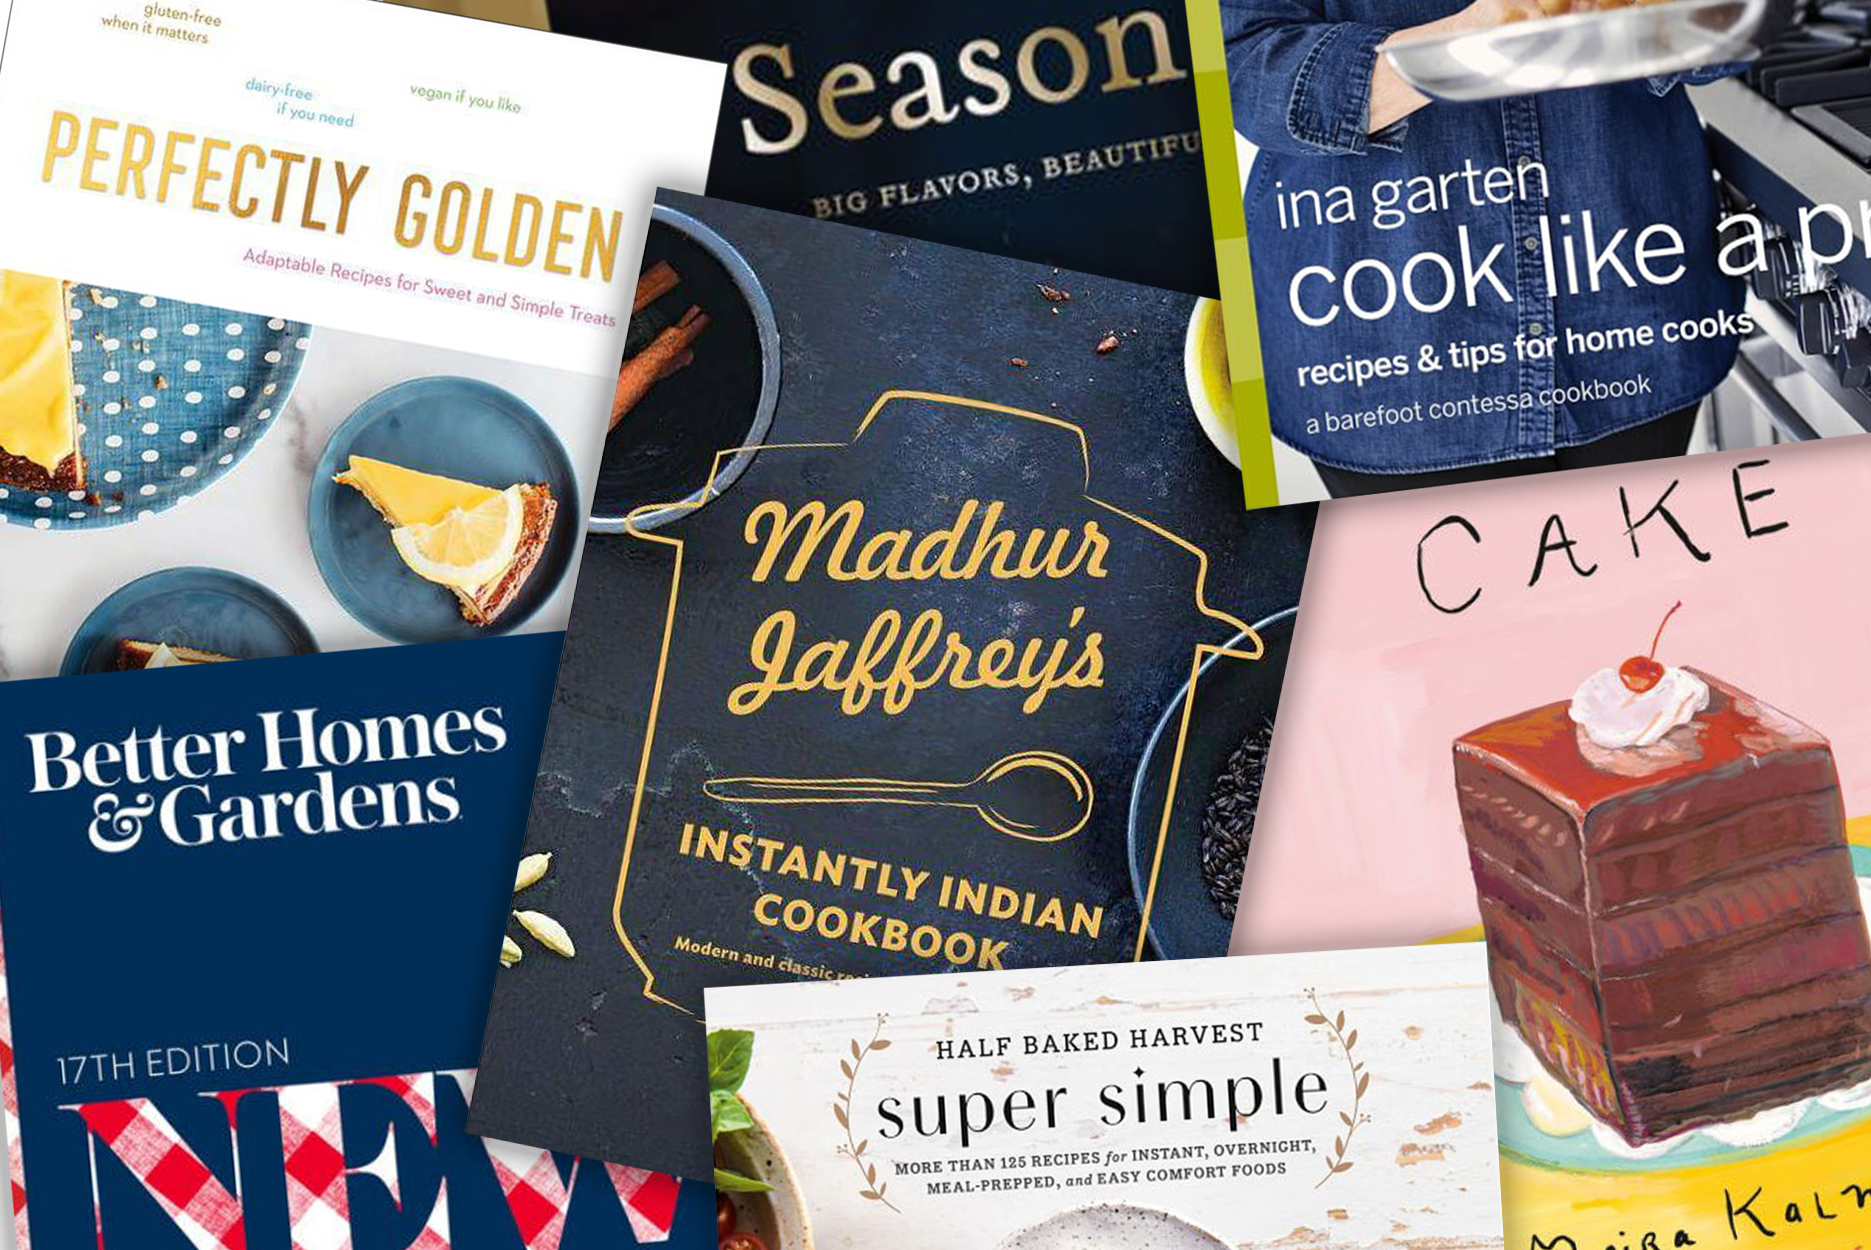 cookbook ideas for Mother's Day gifts